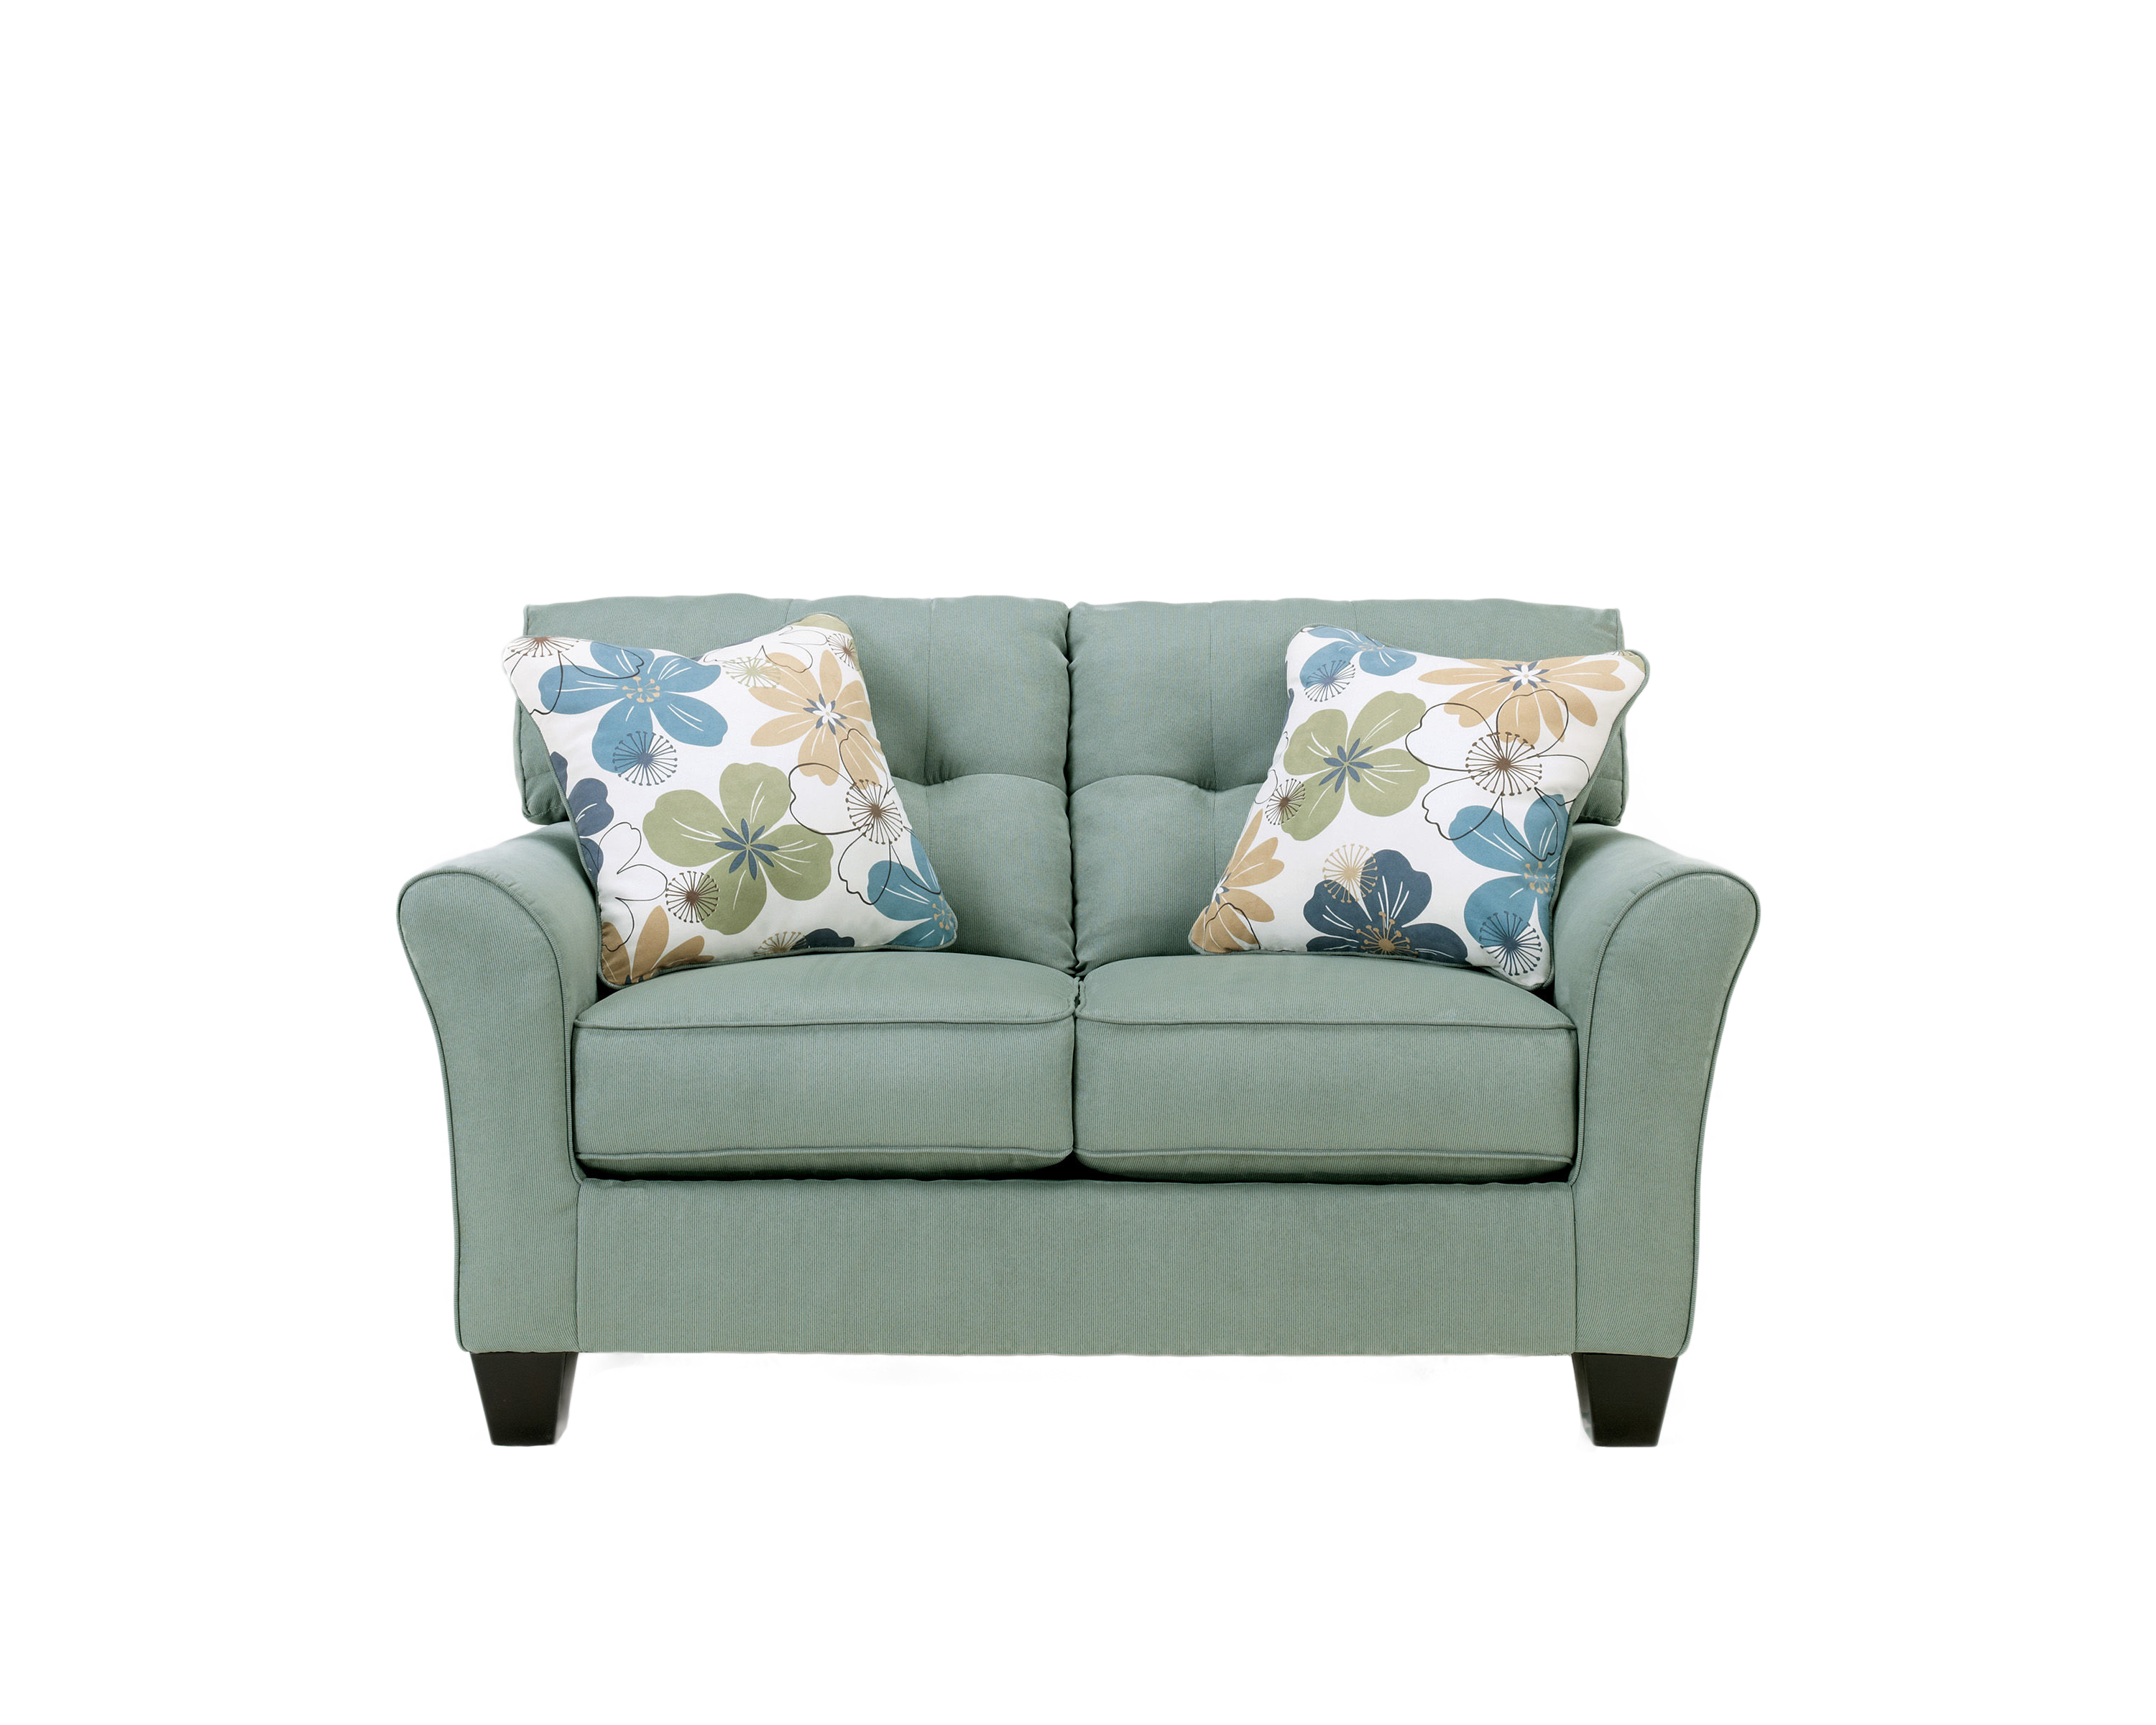 Kylee lagoon loveseat the classy home for Ashley kylee chaise lounge